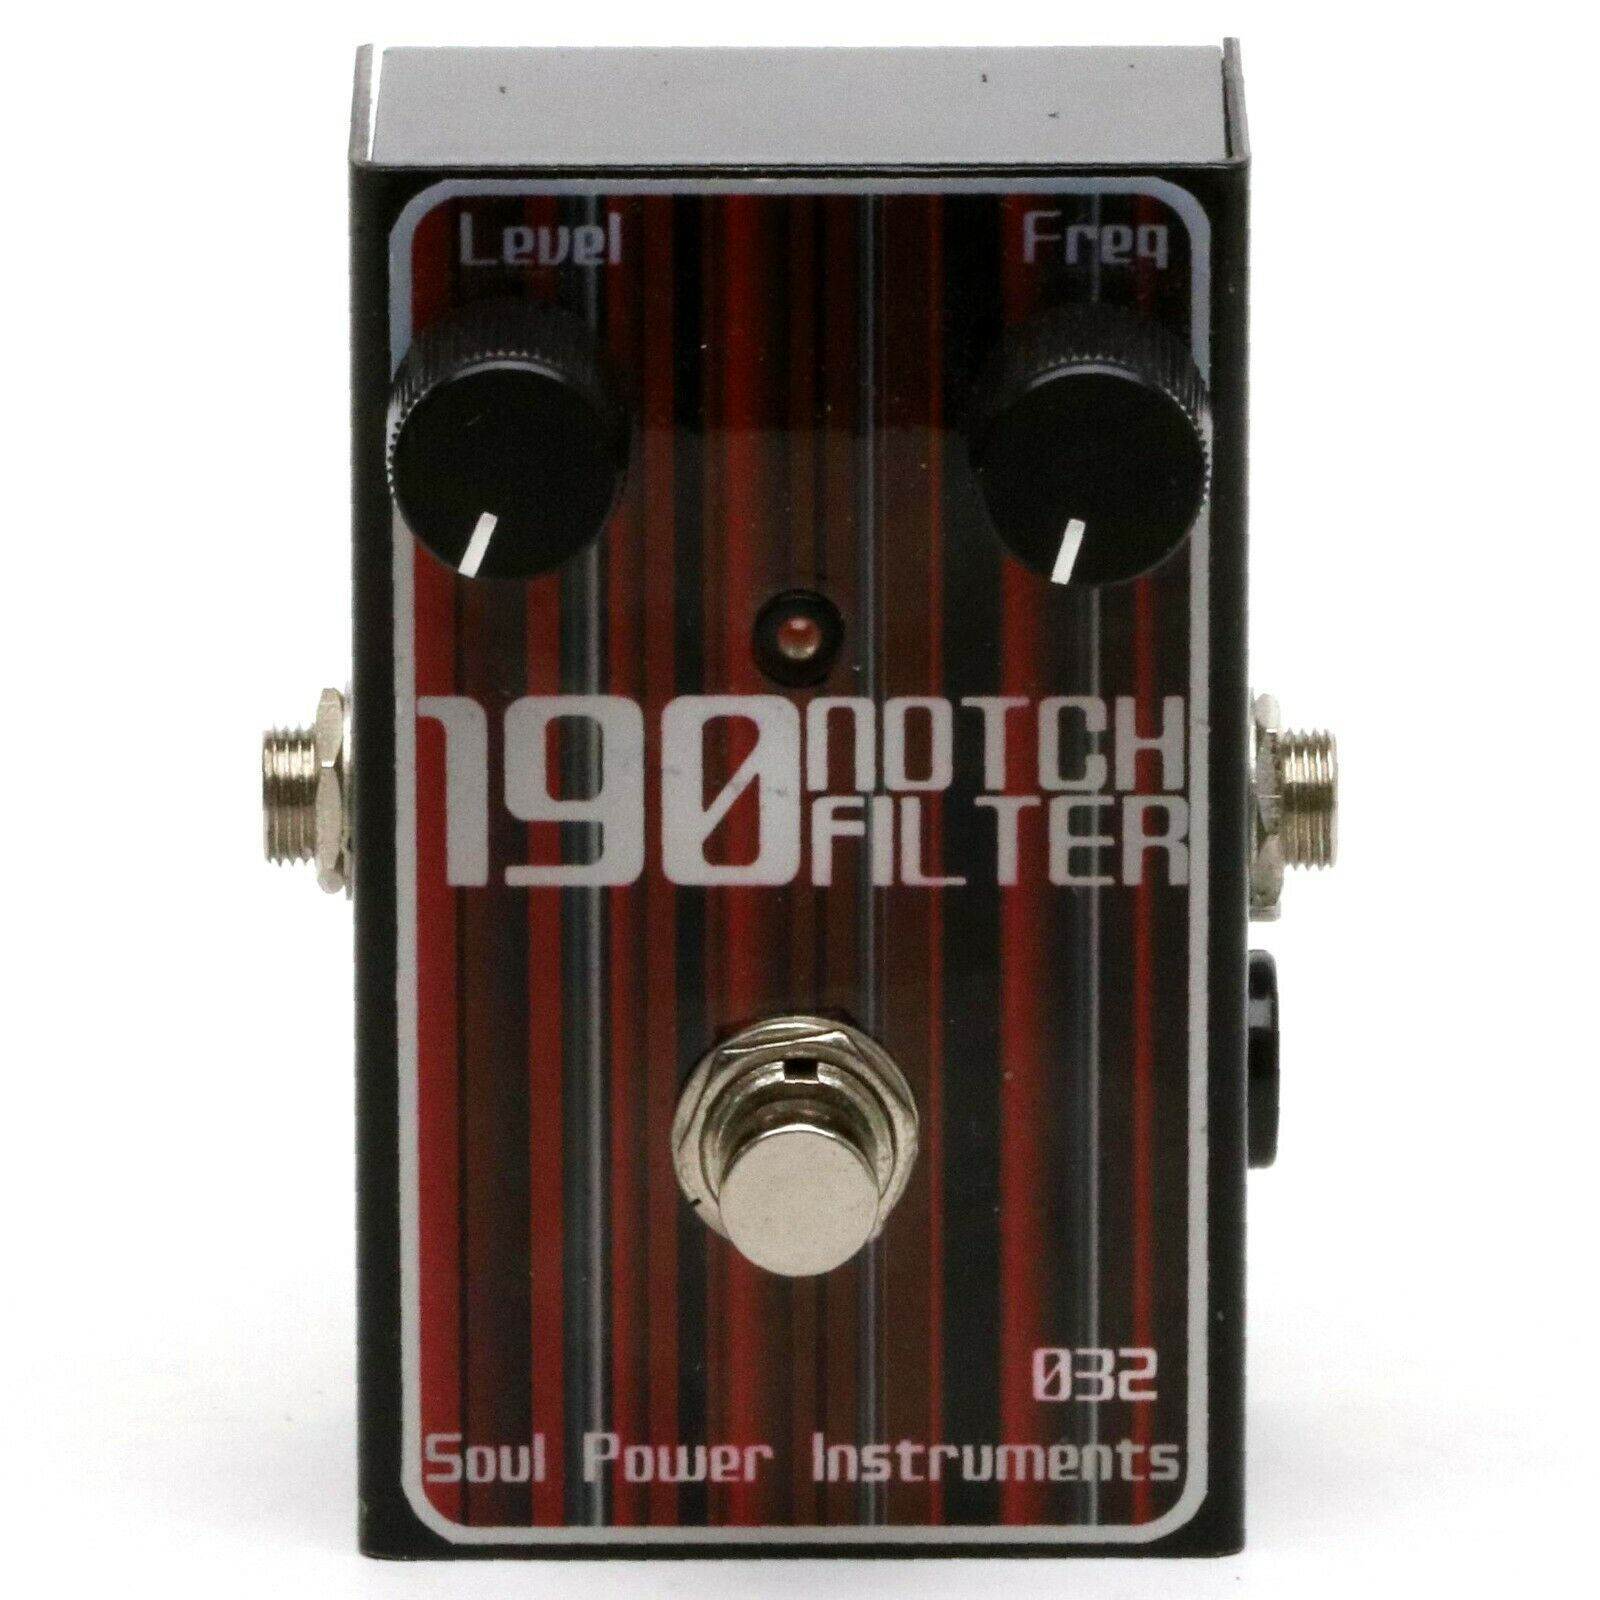 Soul Power Instrument 190 NOTCH FILTER IKUO Signature Model Bass Effect Pedal